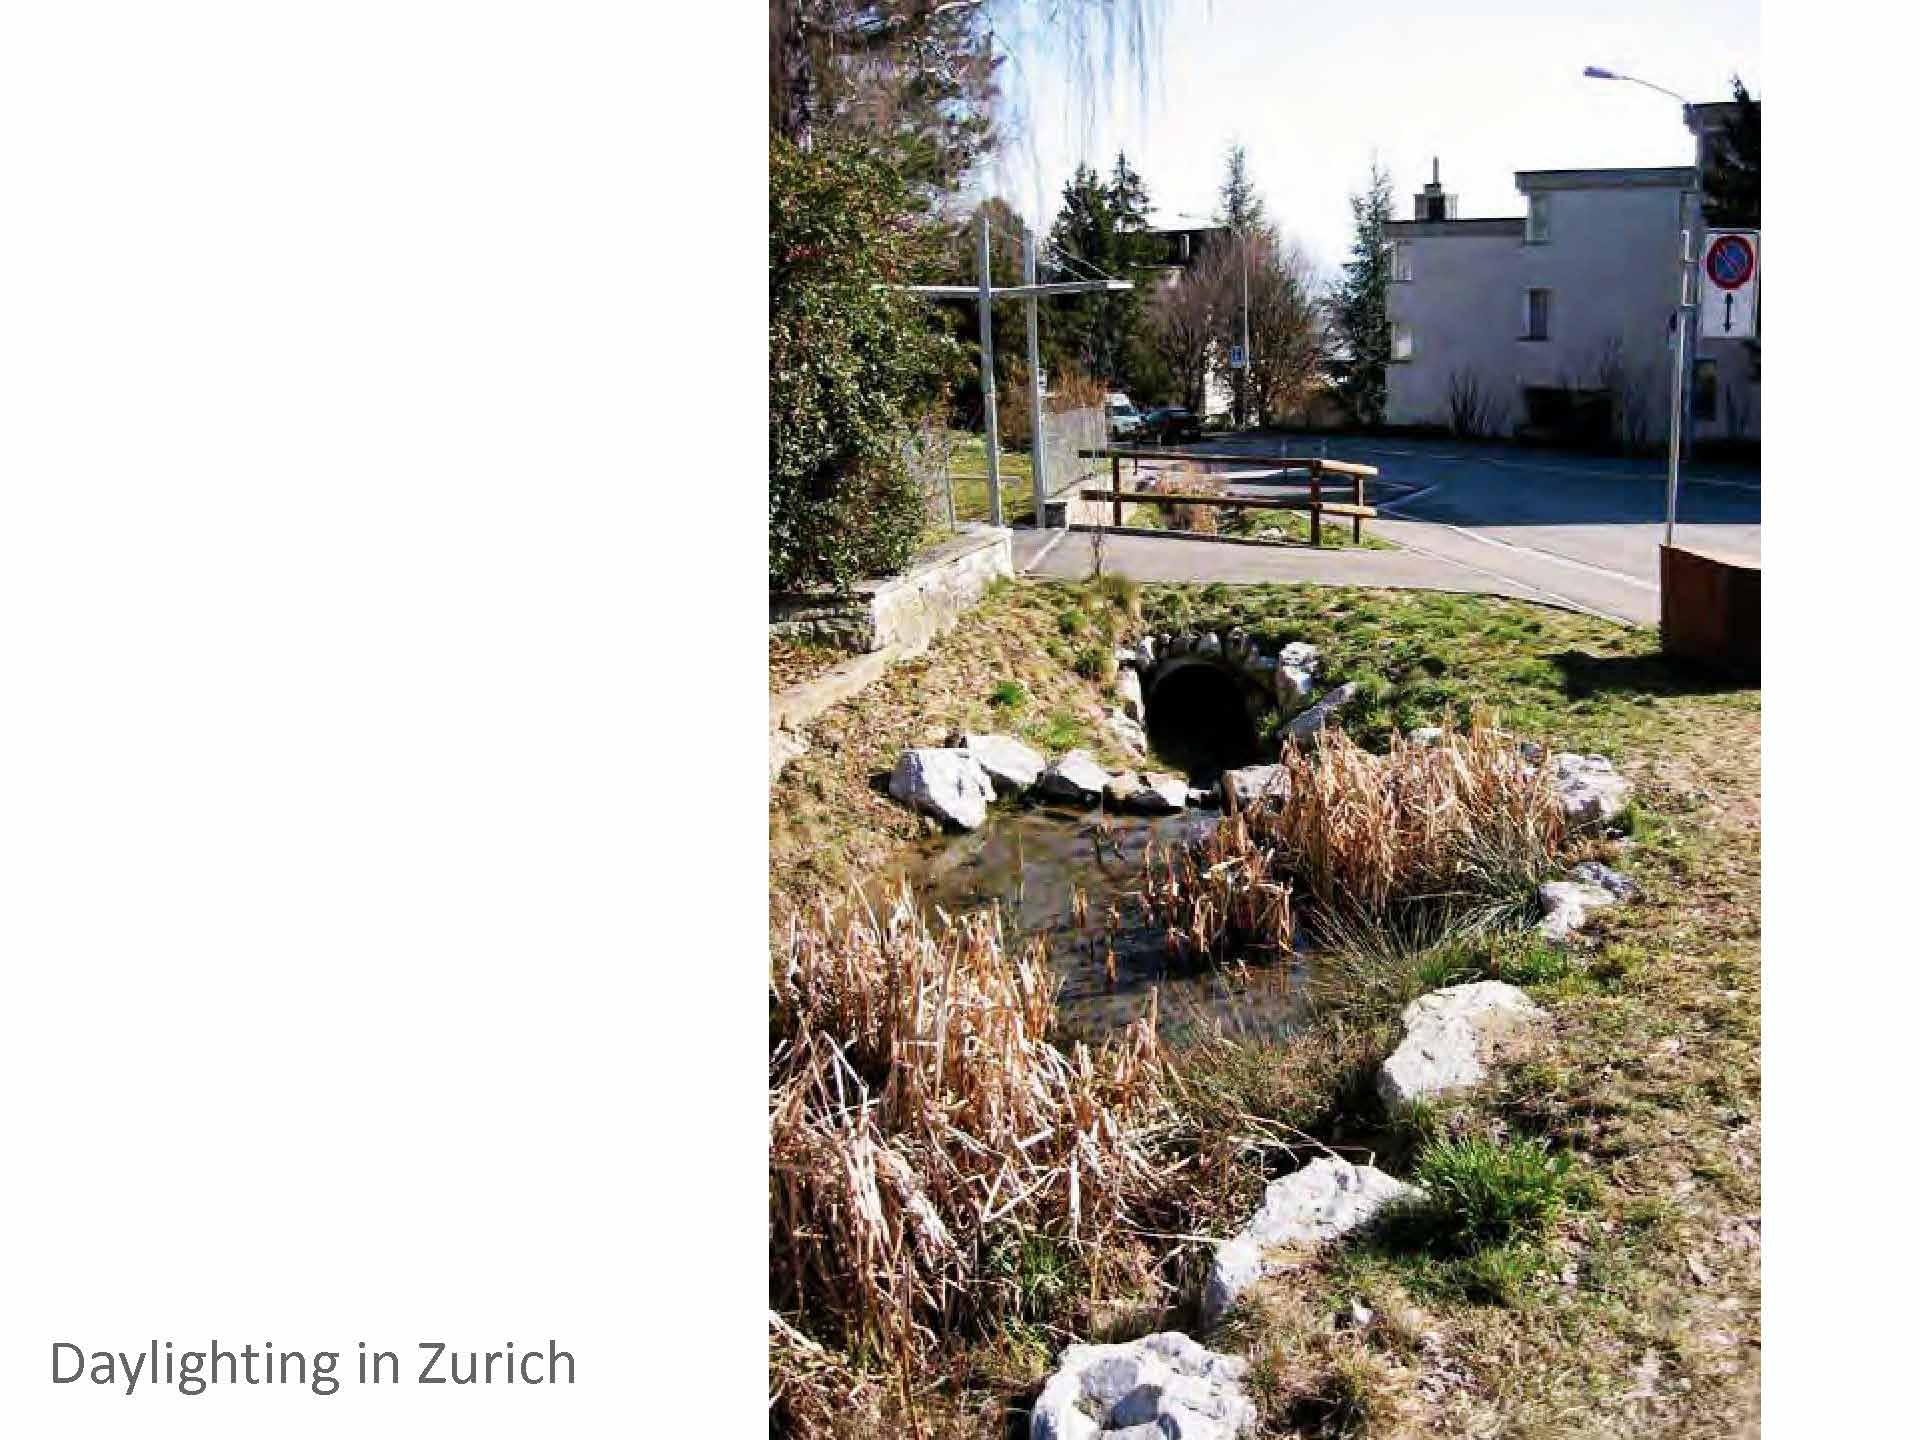 Zurich's constructed streams are designed to carry 3 to 5x the dry weather flow, with the excess going into the sewer.